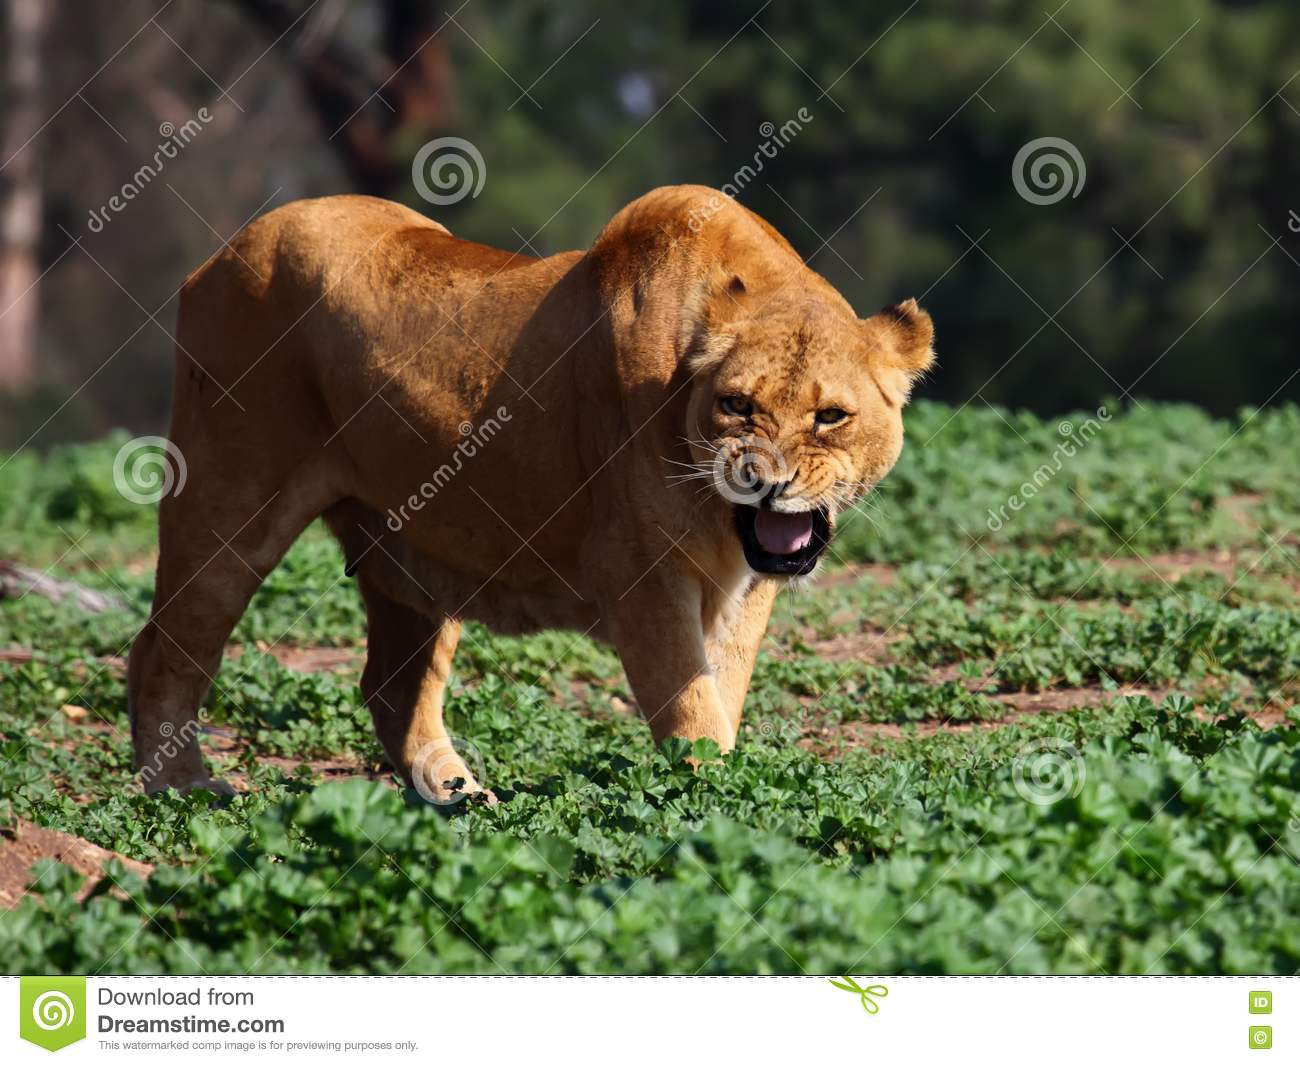 angry lioness - photo #39